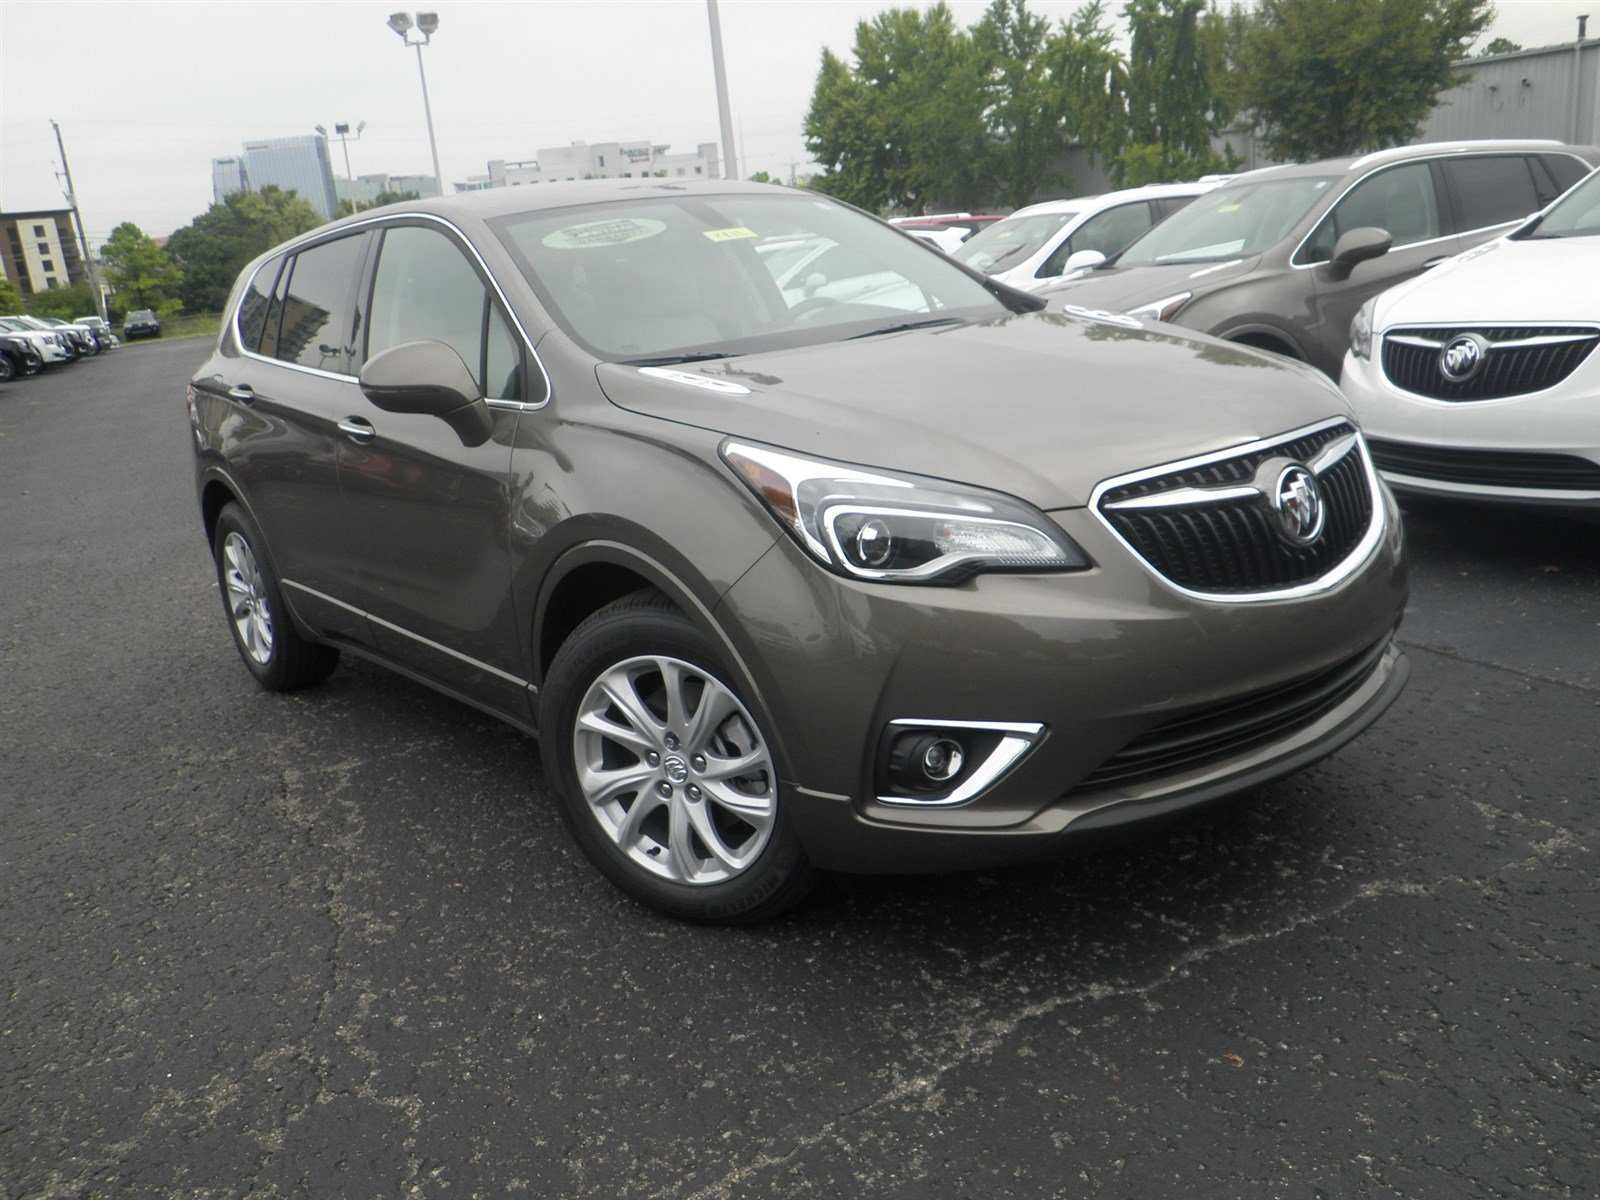 64 New Best 2019 Buick Envision Preferred Release Date Pictures with Best 2019 Buick Envision Preferred Release Date